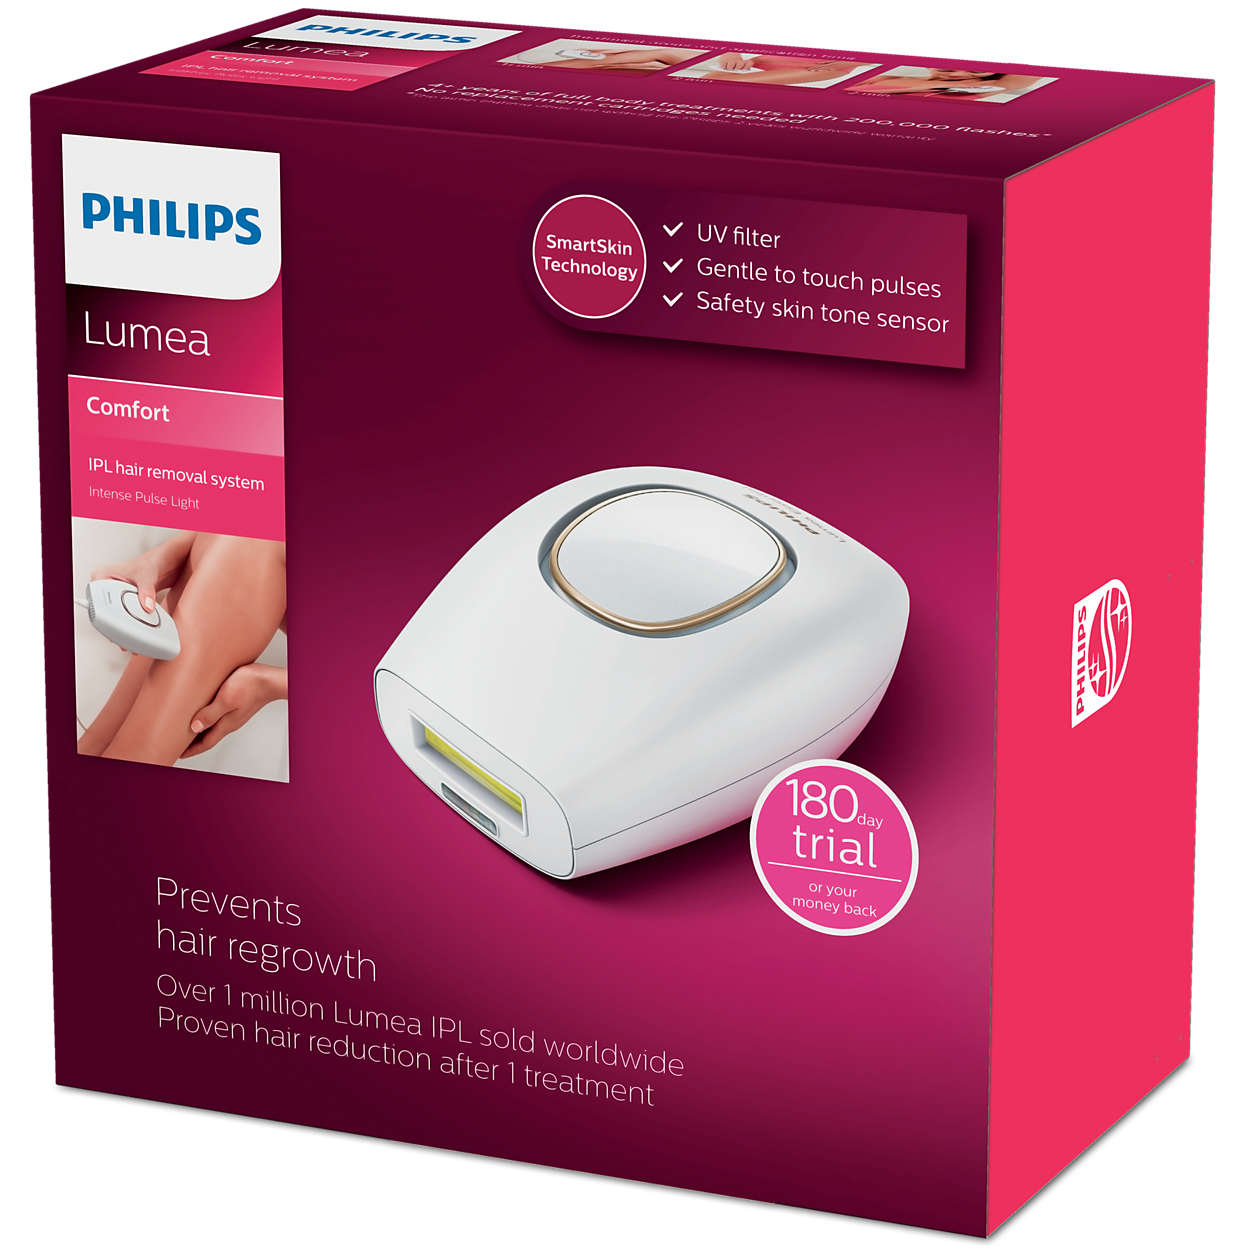 Lumea Comfort Ipl Hair Removal System Sc1981 50 Philips